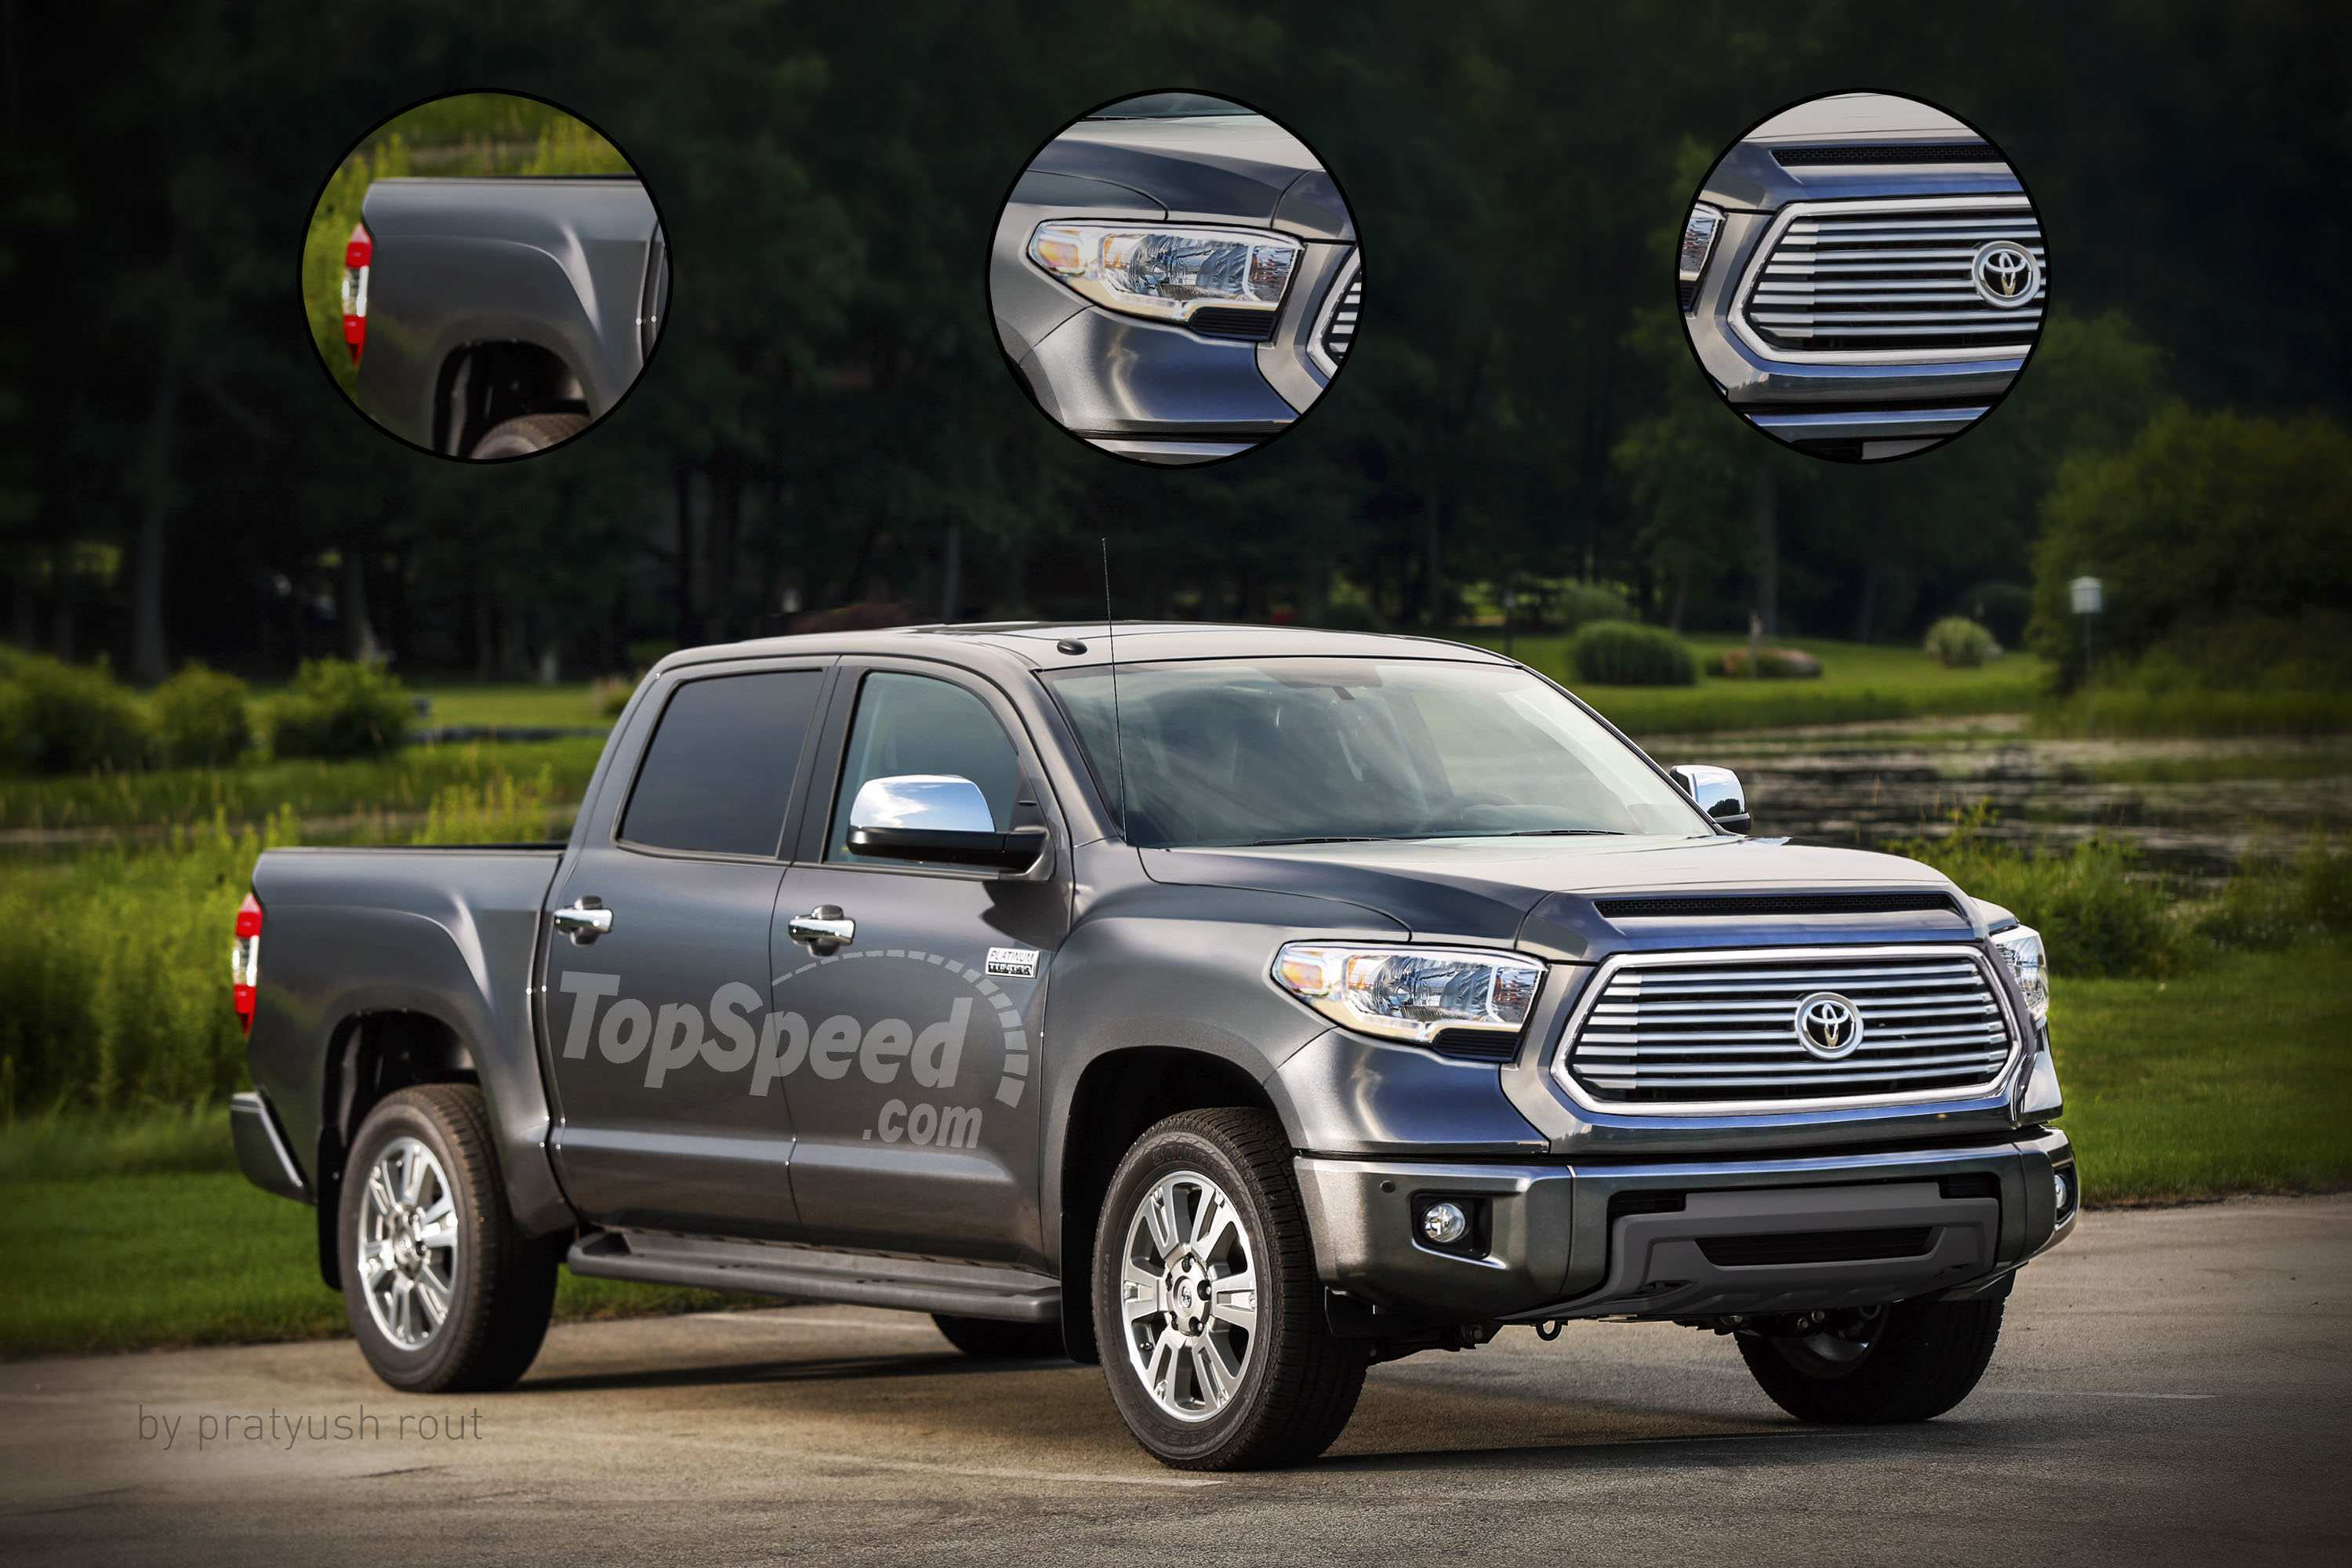 44 Concept of 2019 Toyota Tundra Truck Photos by 2019 Toyota Tundra Truck